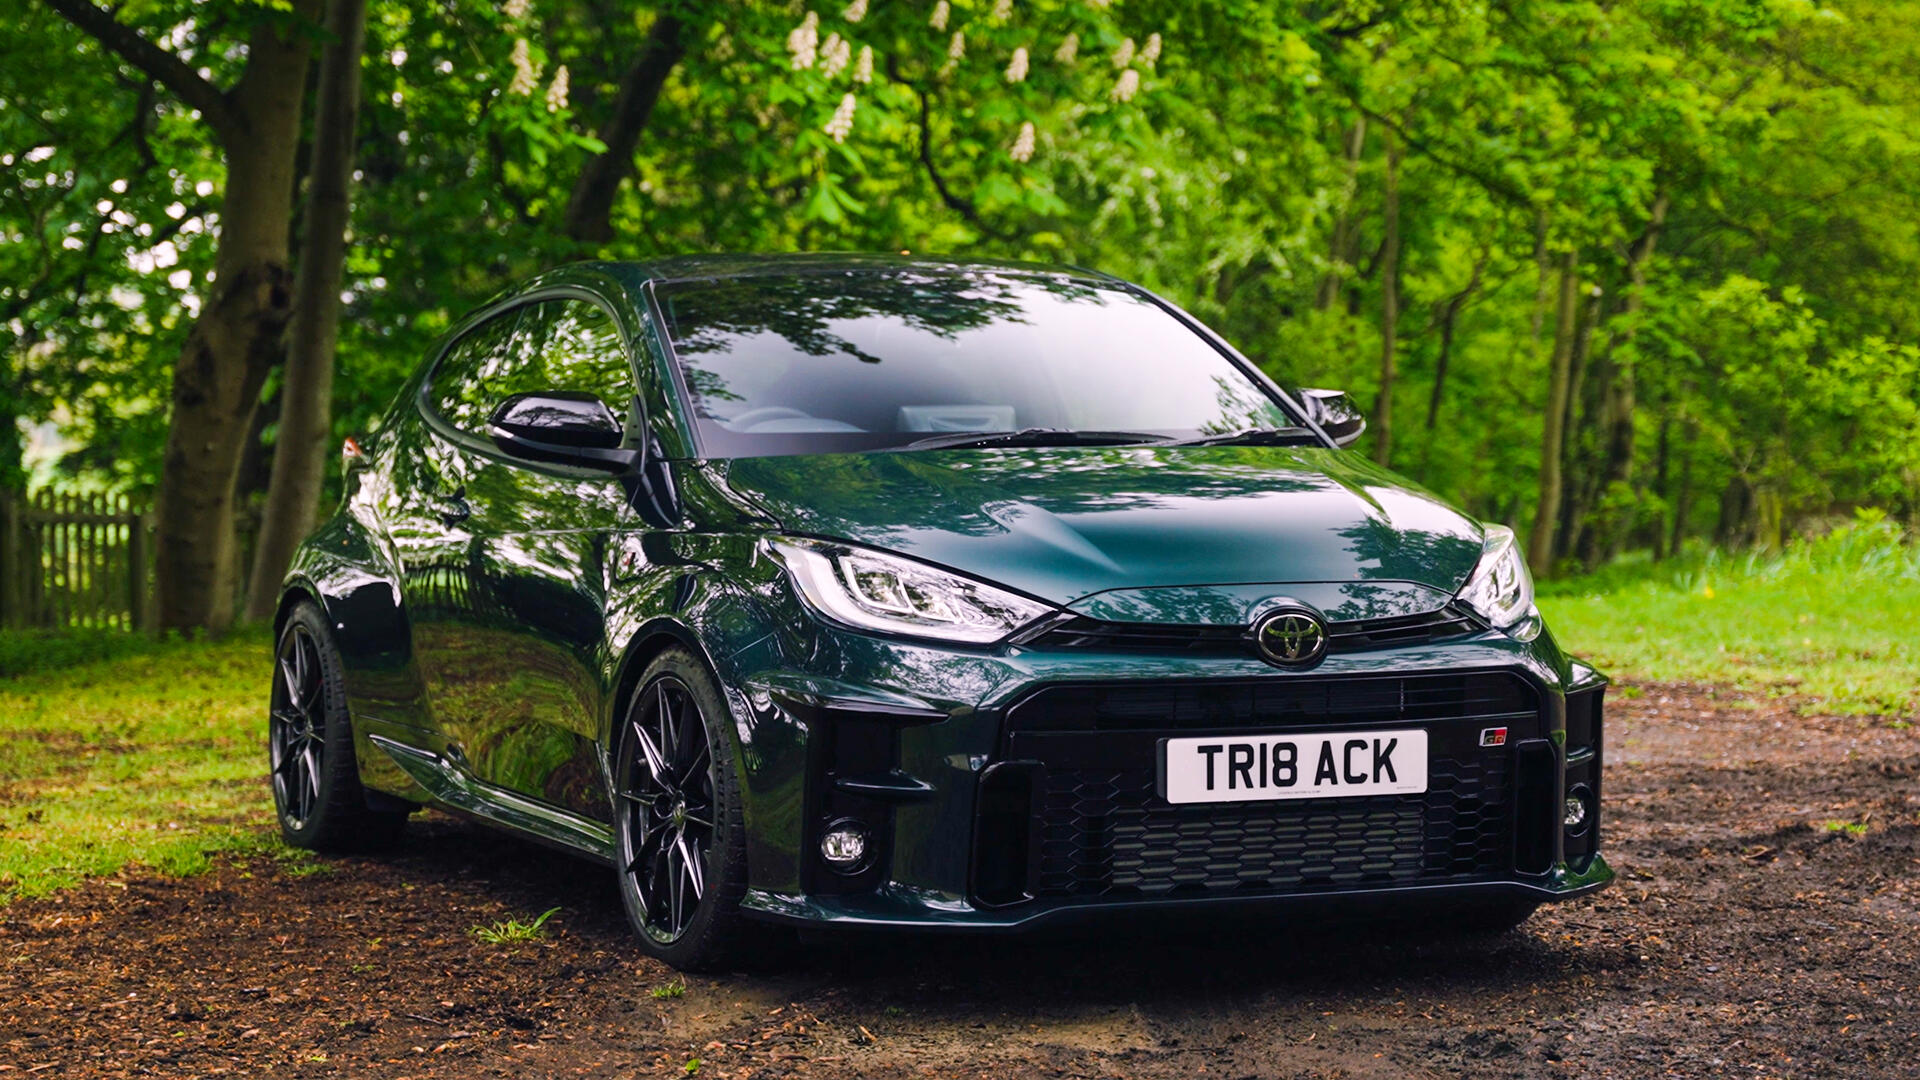 Video: Is this tuned Toyota GR Yaris better than the original?